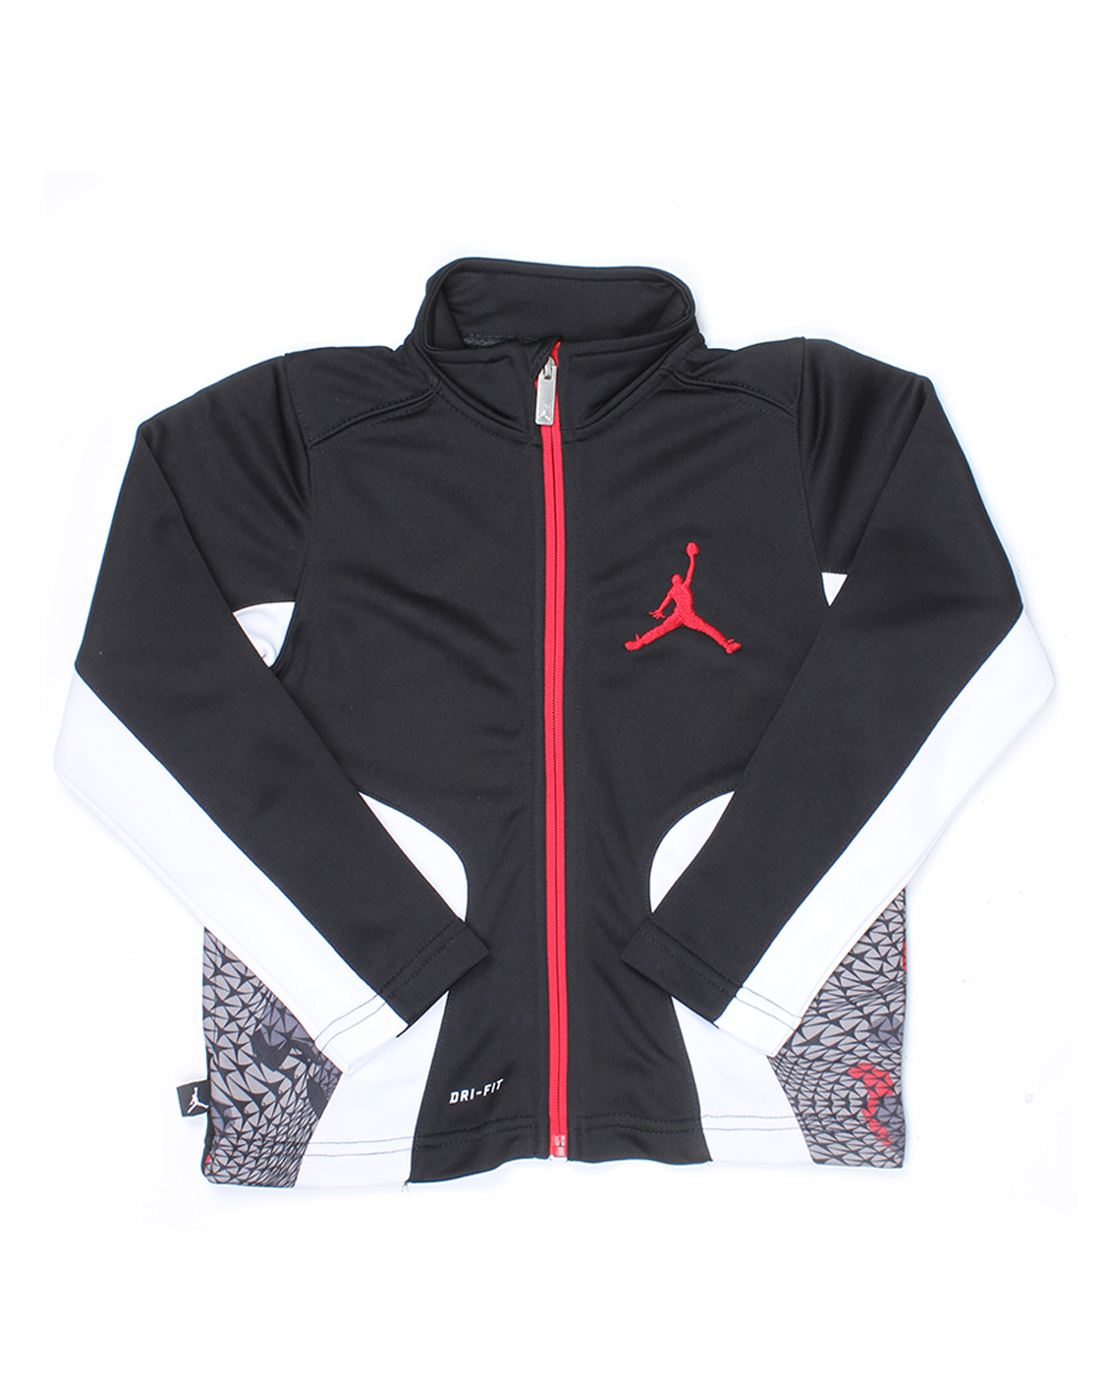 Jordan Boys Black Solid Jacket